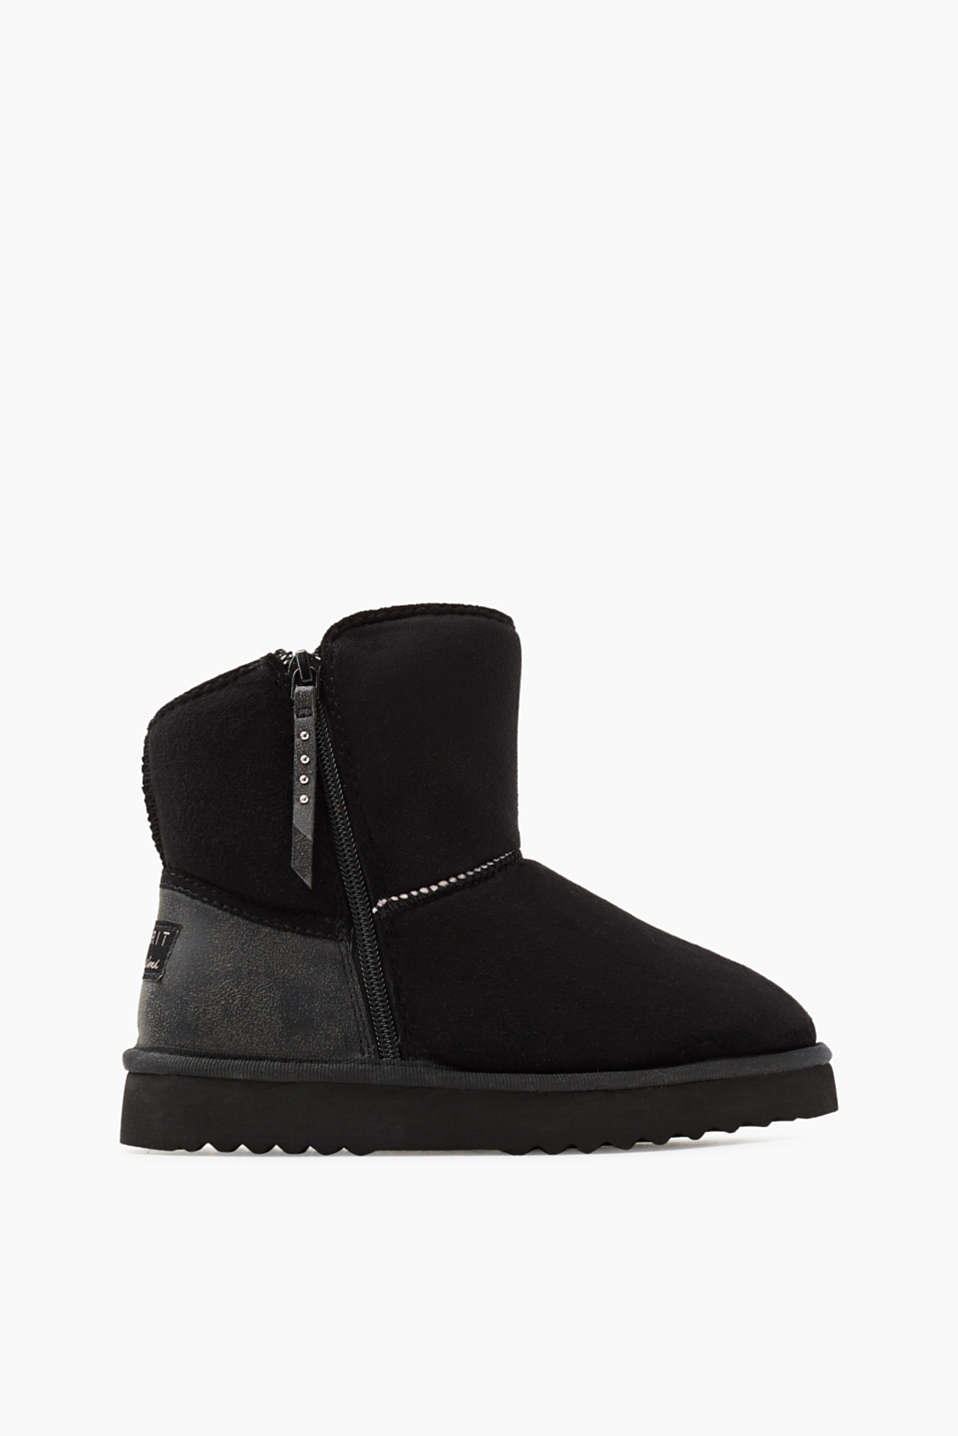 Esprit - Winter boots with soft faux fur lining